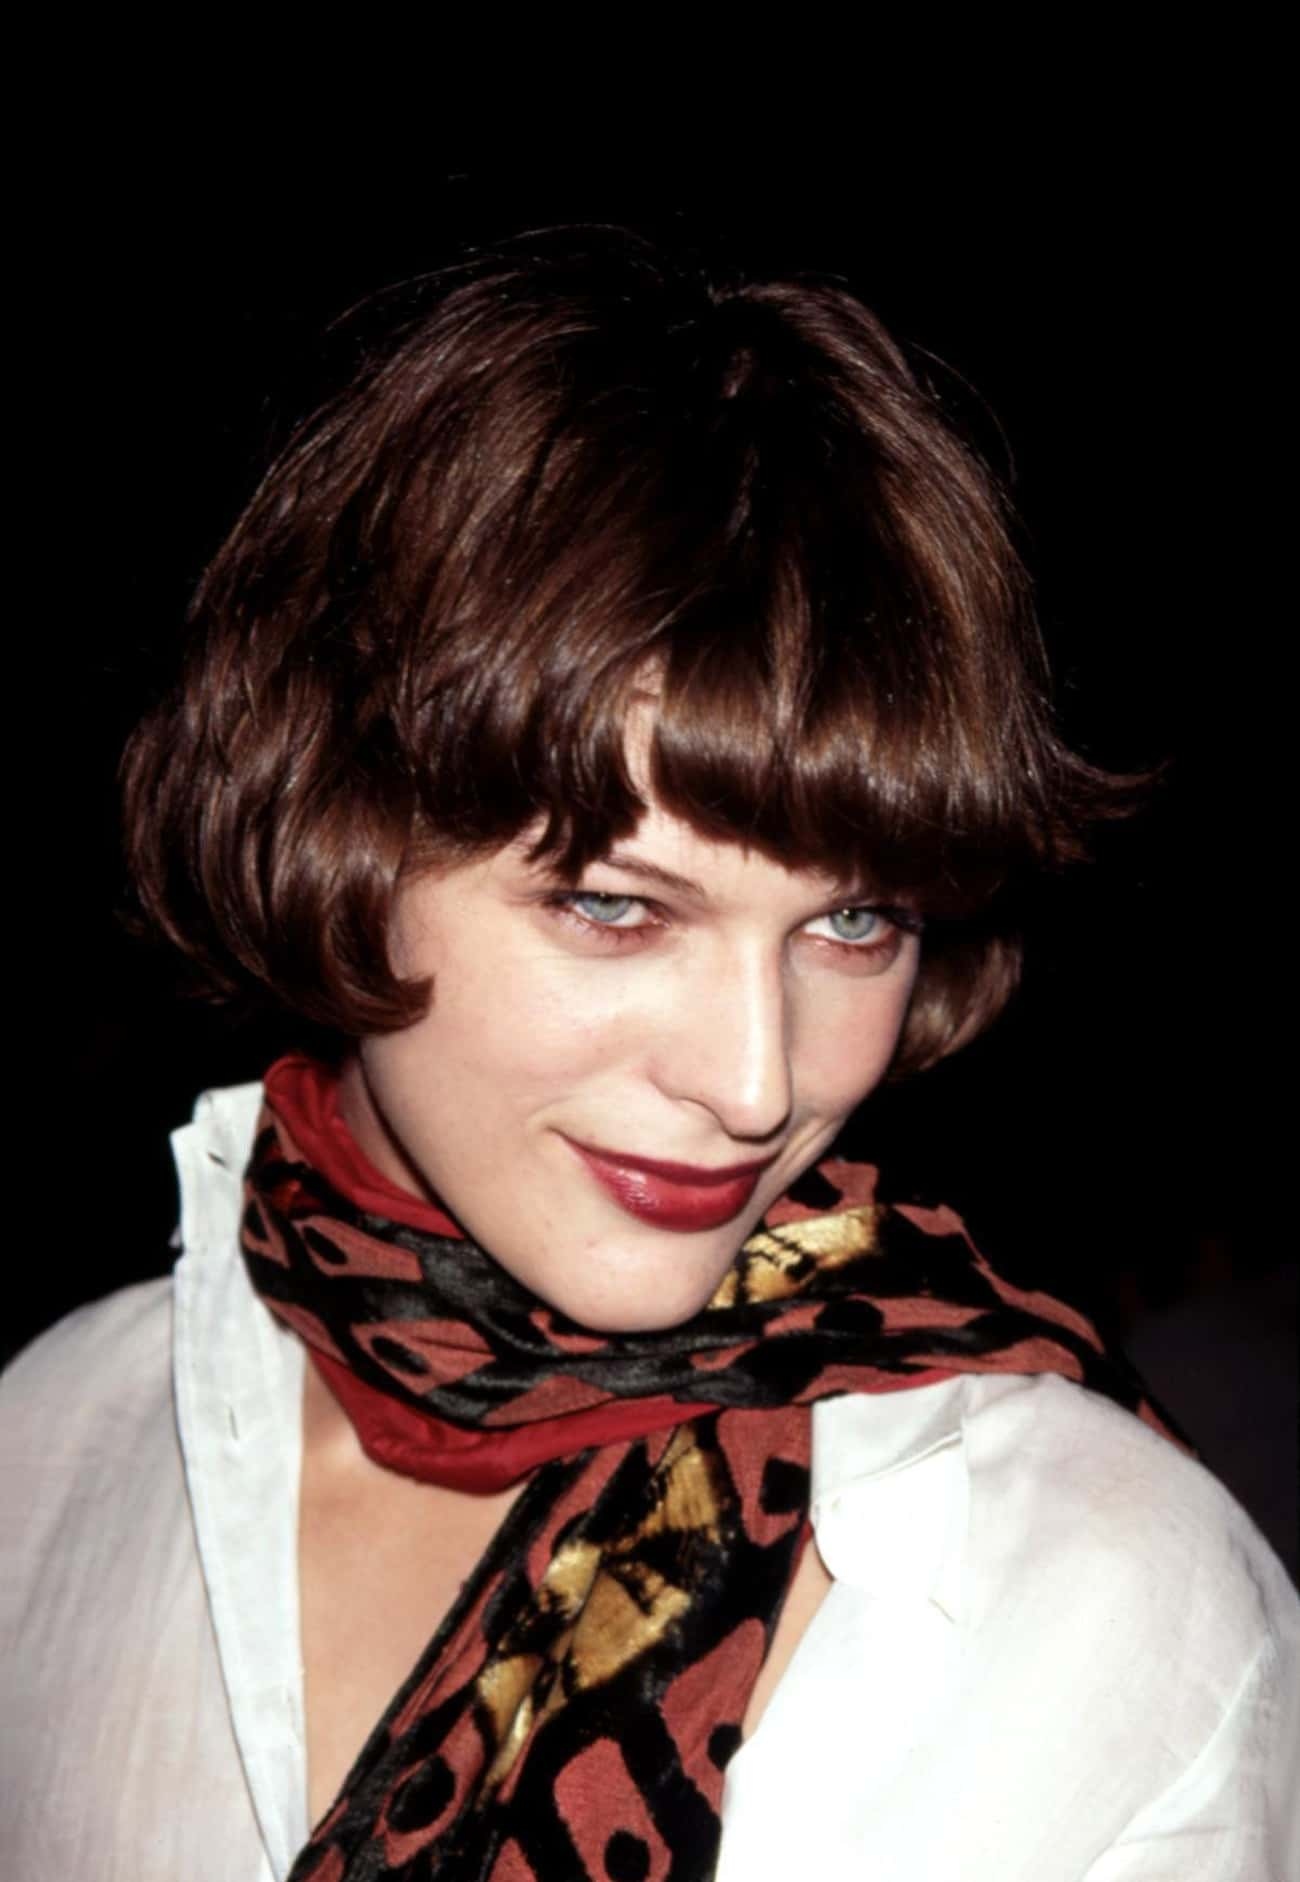 She Dropped Out Of School At A is listed (or ranked) 3 on the list 11 Facts That Prove Milla Jovovich Is Just As Much Of A Rogue As The Characters She Plays